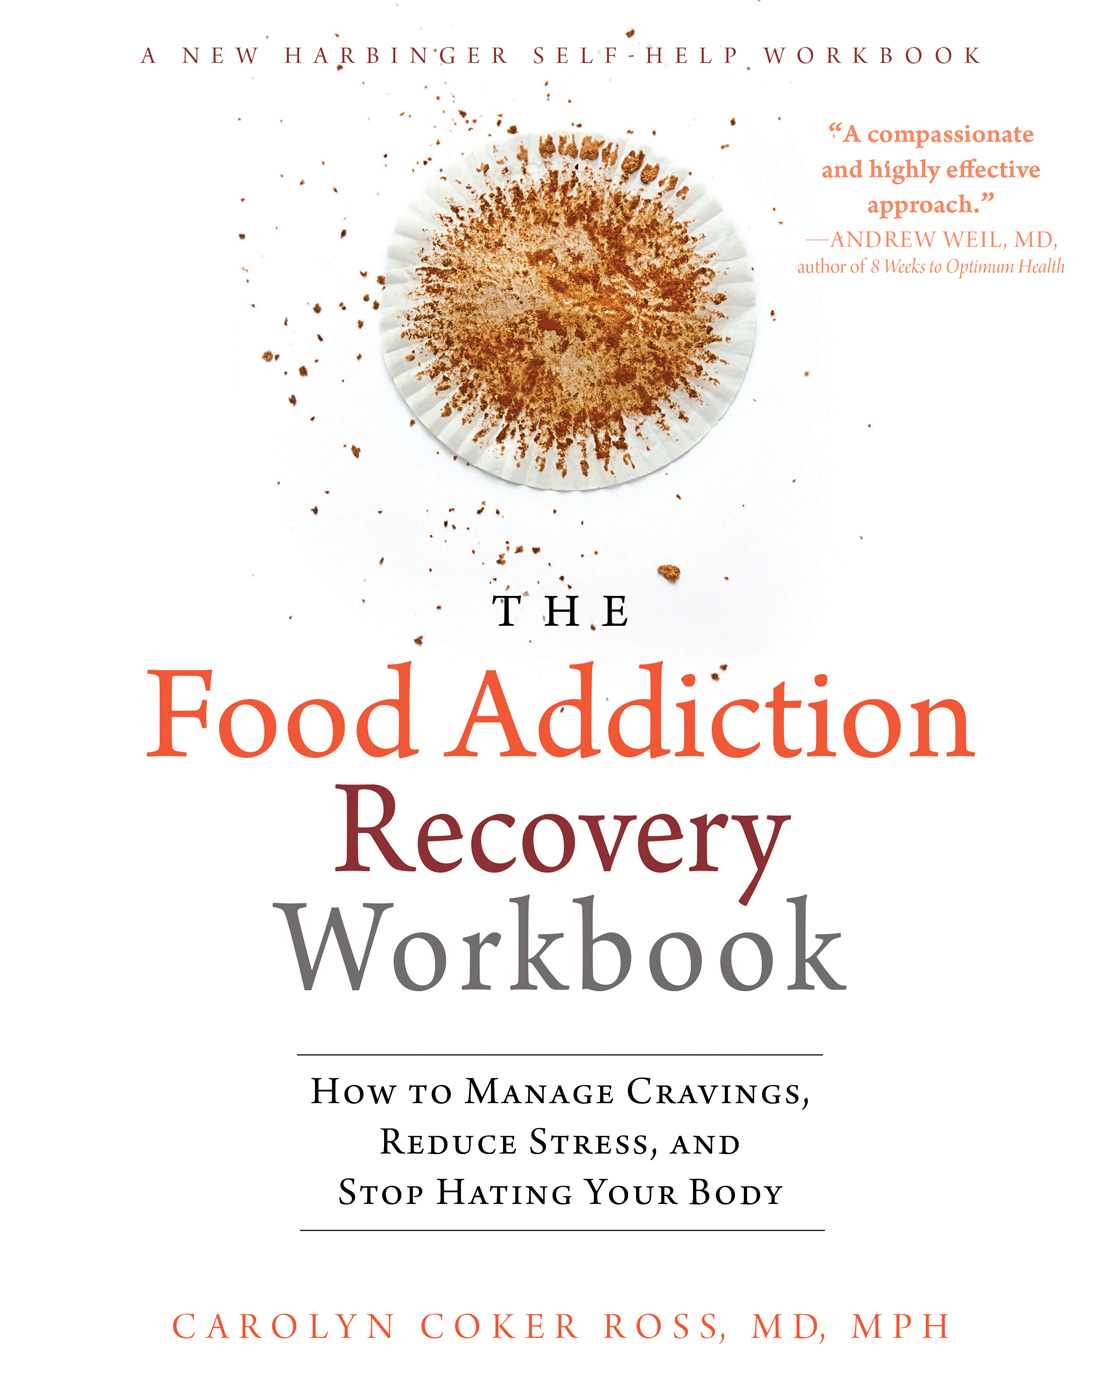 The Food Addiction Recovery Workbook How to Manage Cravings, Reduce Stress, and Stop Hating Your Body